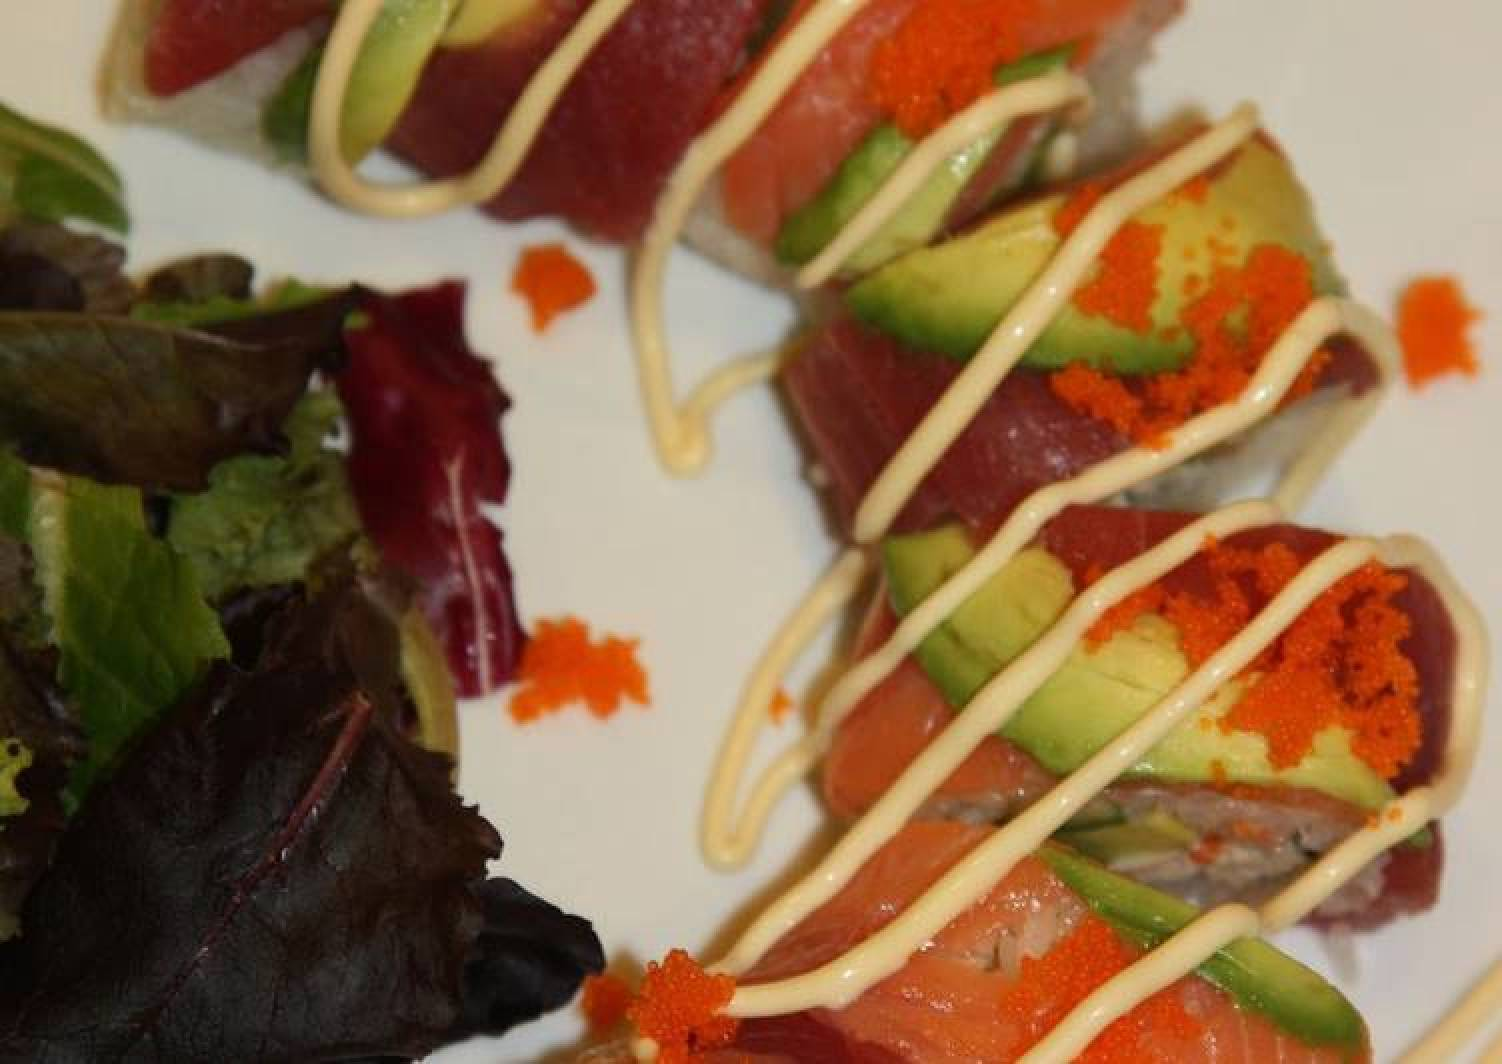 For Parties and Celebrations: Rainbow Roll Sushi